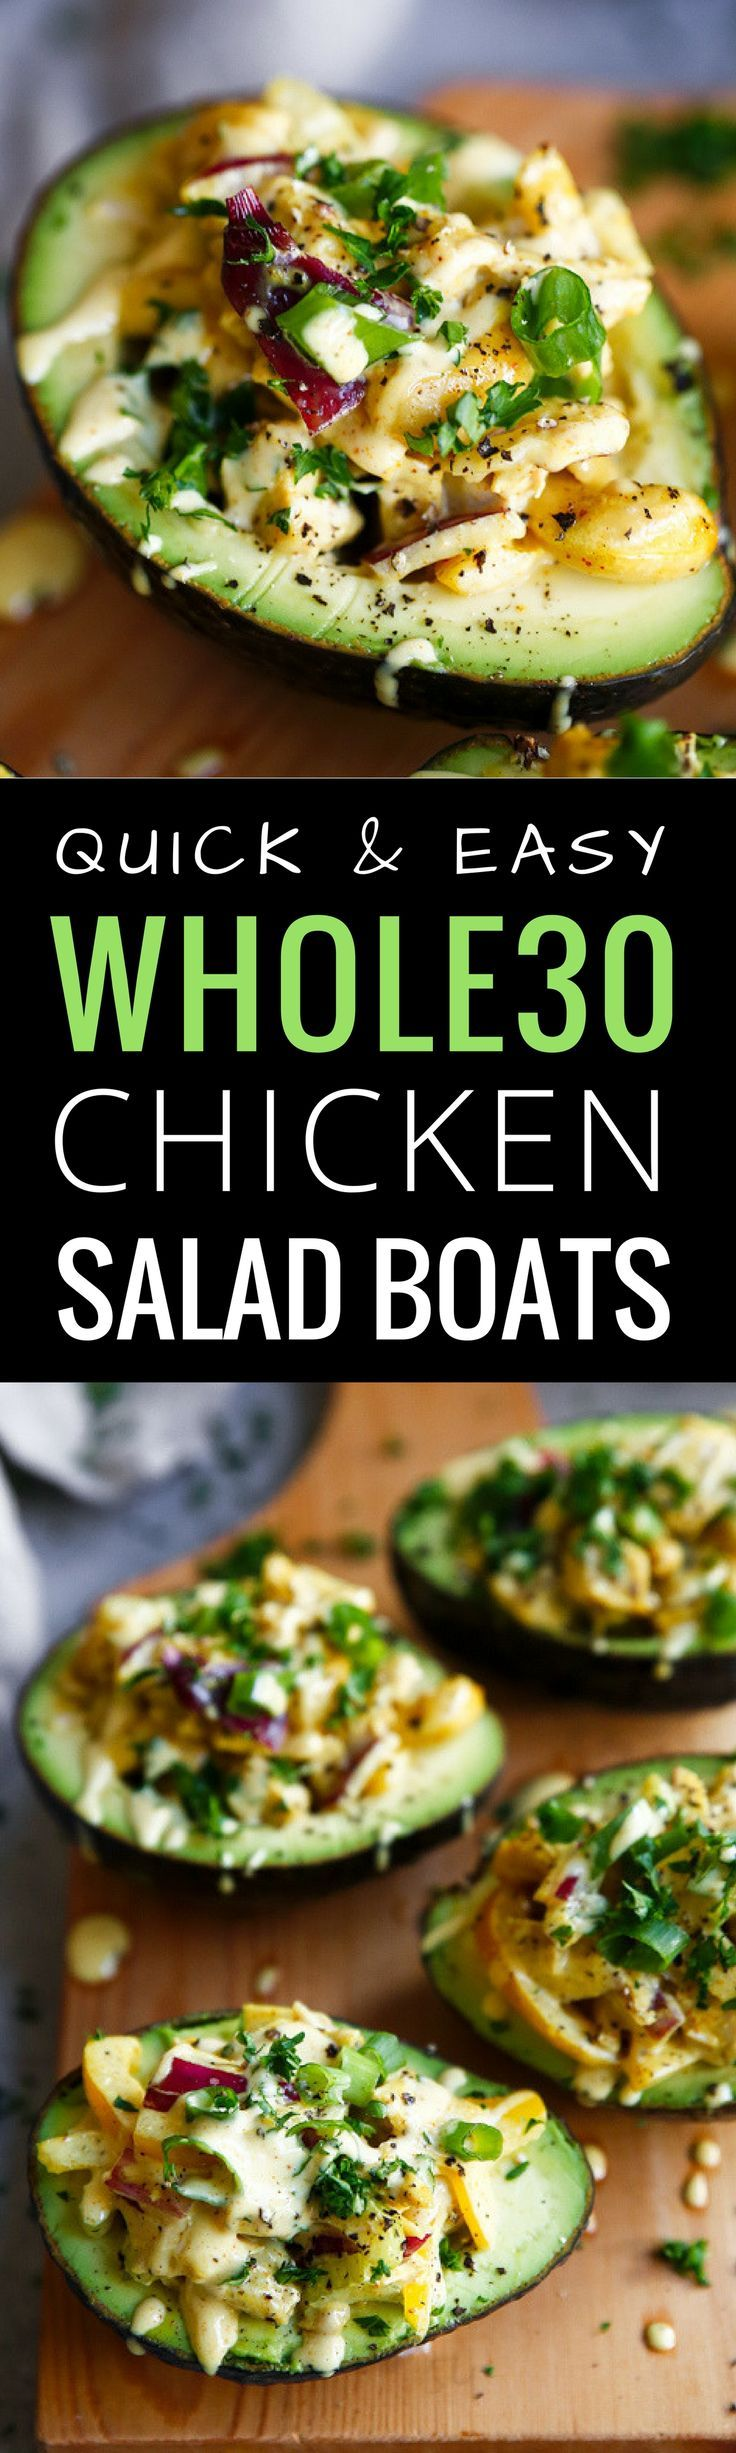 5 minute Whole30 lunch on the go! Easy whole30 chicken salad boats